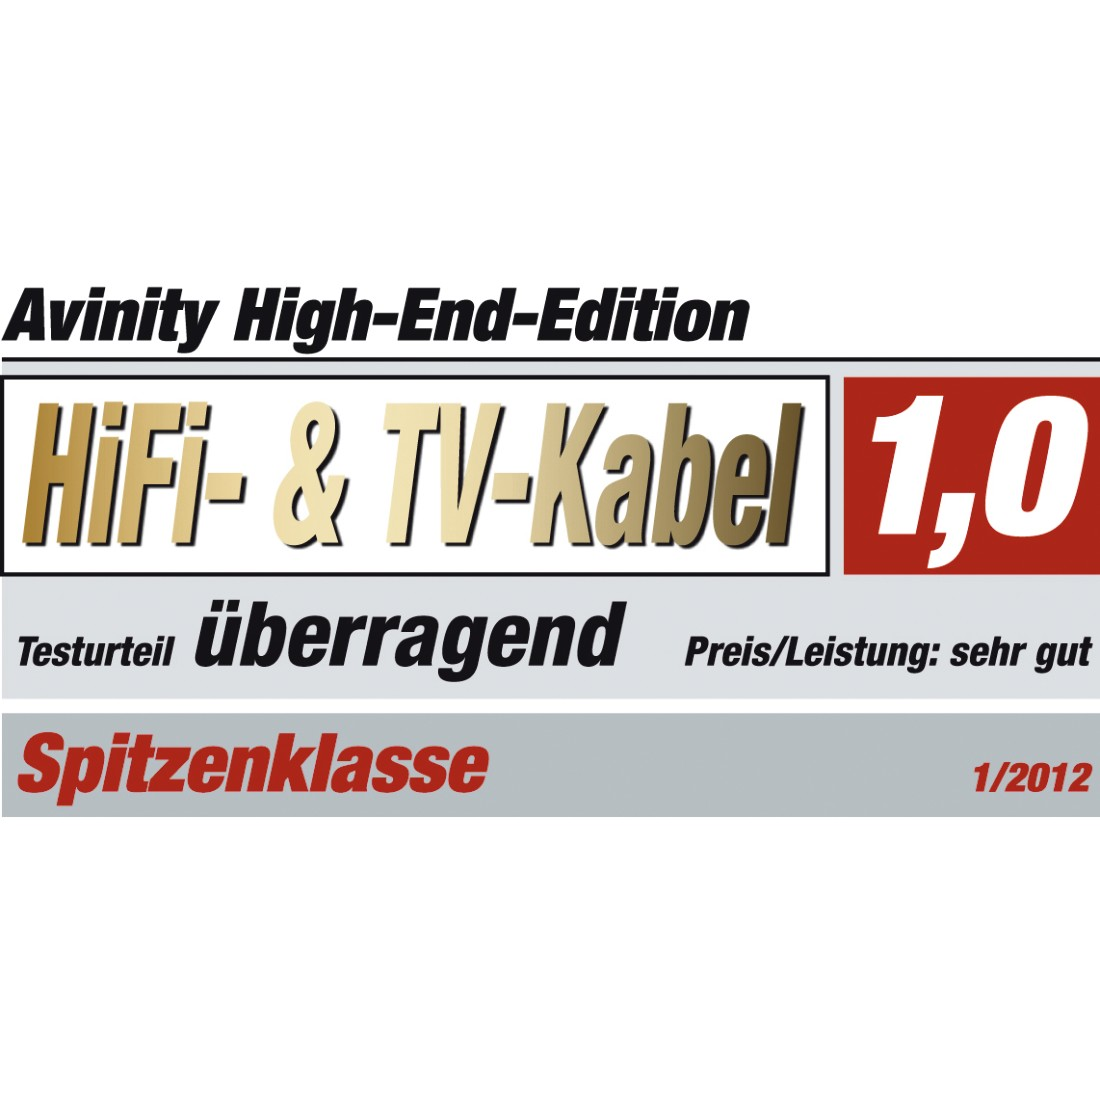 tex6 Druckfähiges Testurteil 6 - Avinity, High Speed HDMI™ Cable, Pl. - Pl., Filter, Oval, gold-plated, Ethernet, 3 m